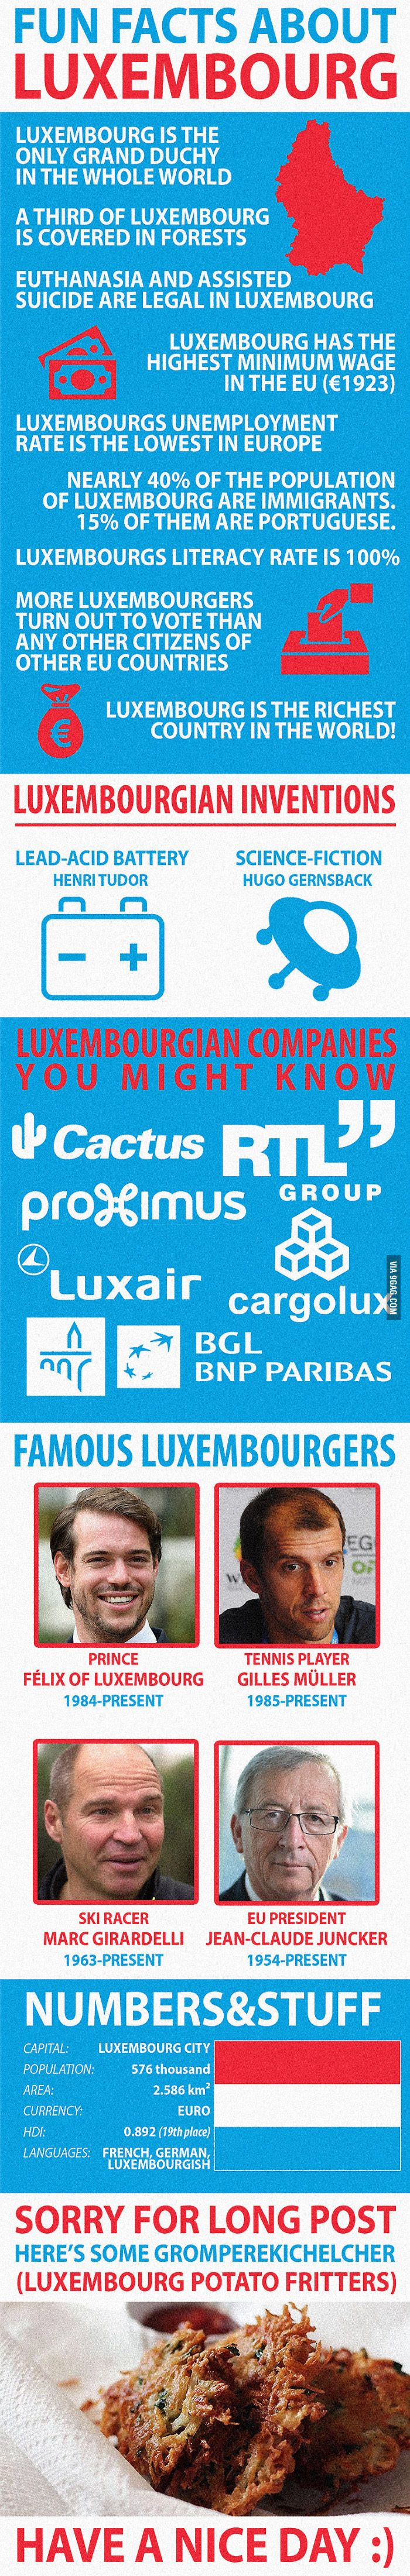 Fun Facts about Luxembourg